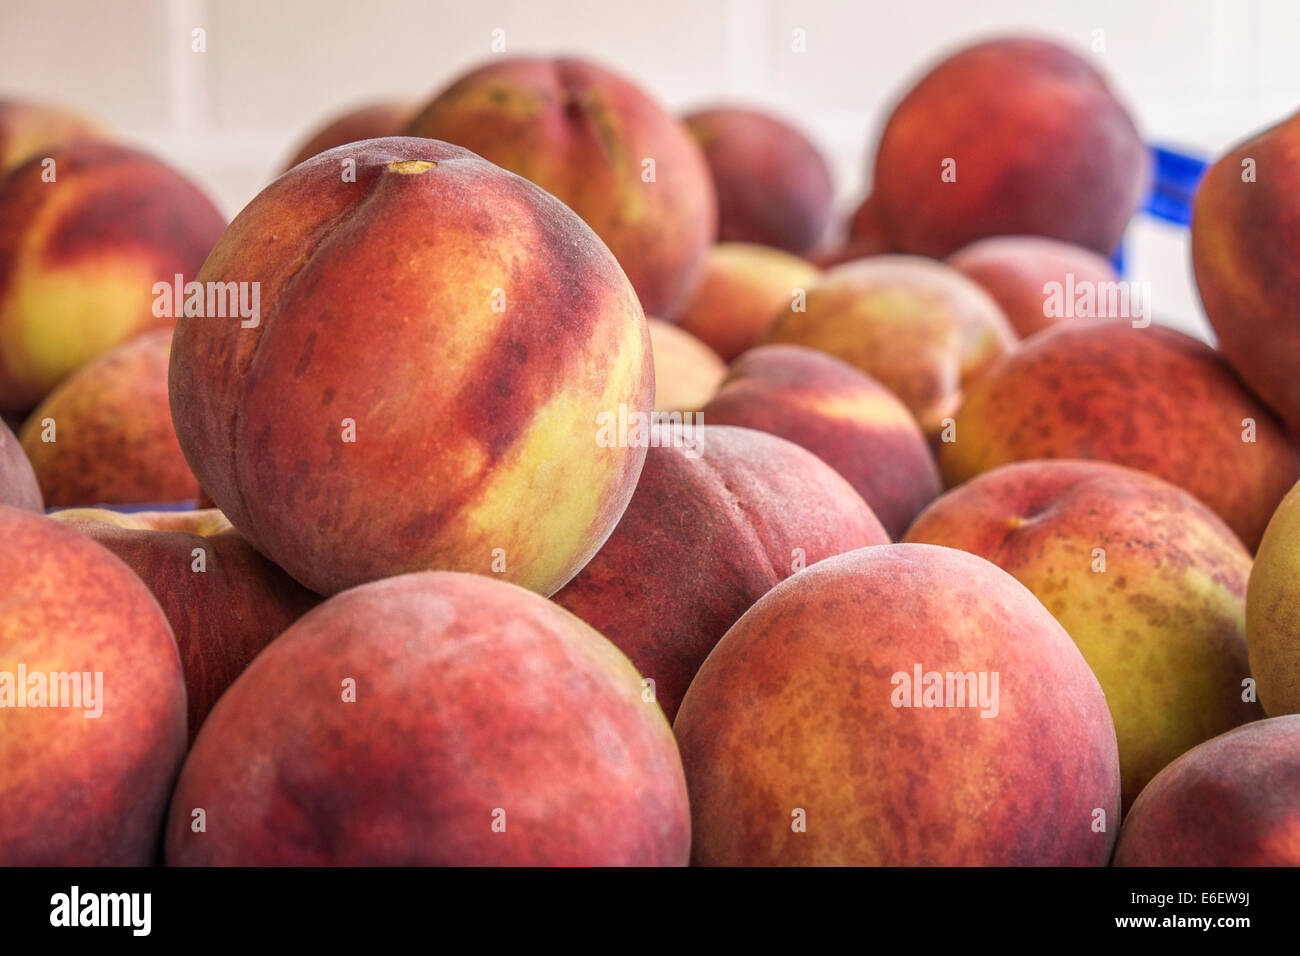 Peaches of Spanish farms during Russian boycott food to UE - Stock Image